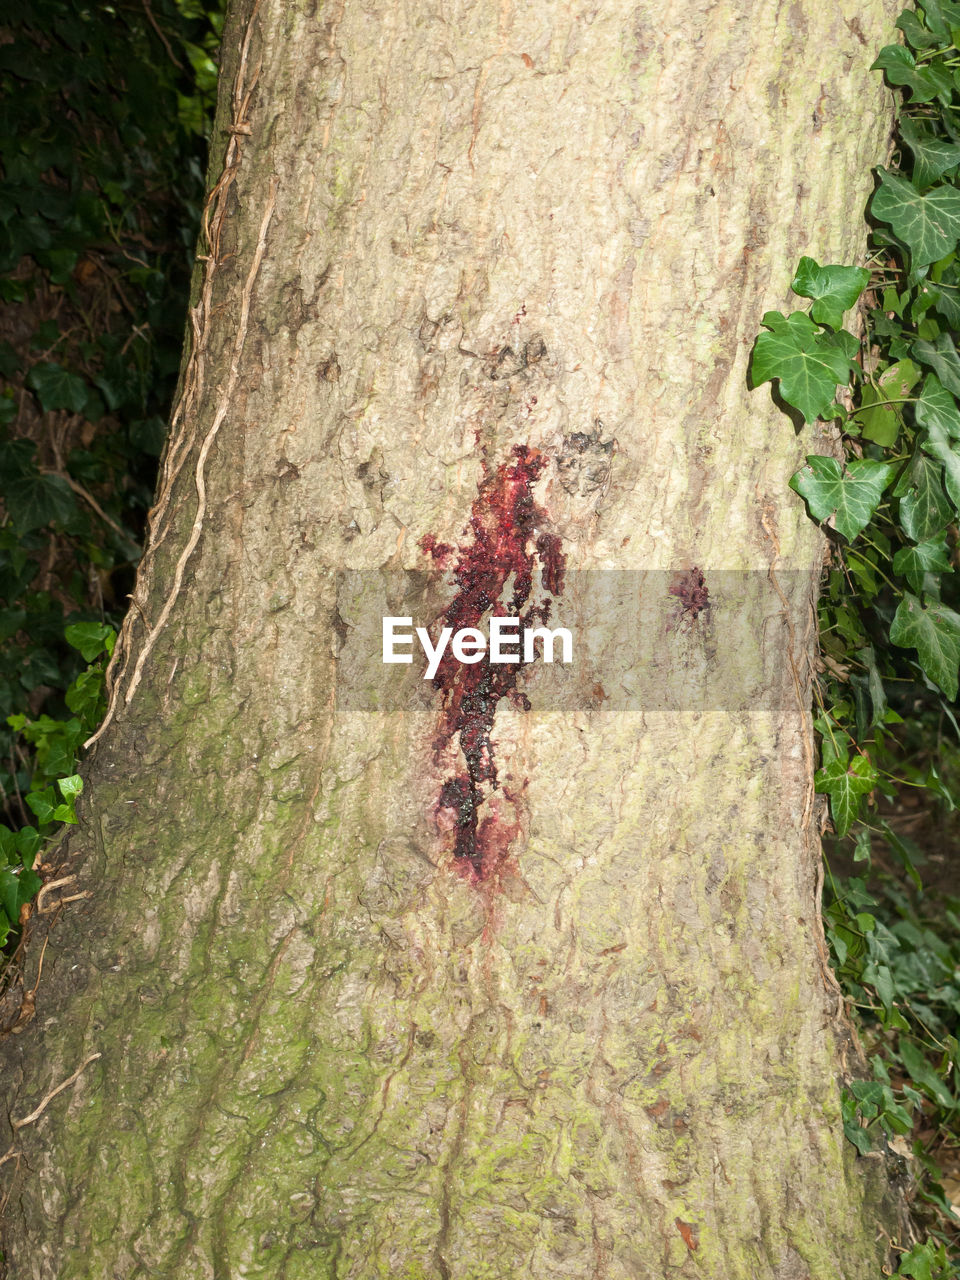 tree trunk, tree, forest, nature, day, textured, growth, outdoors, no people, close-up